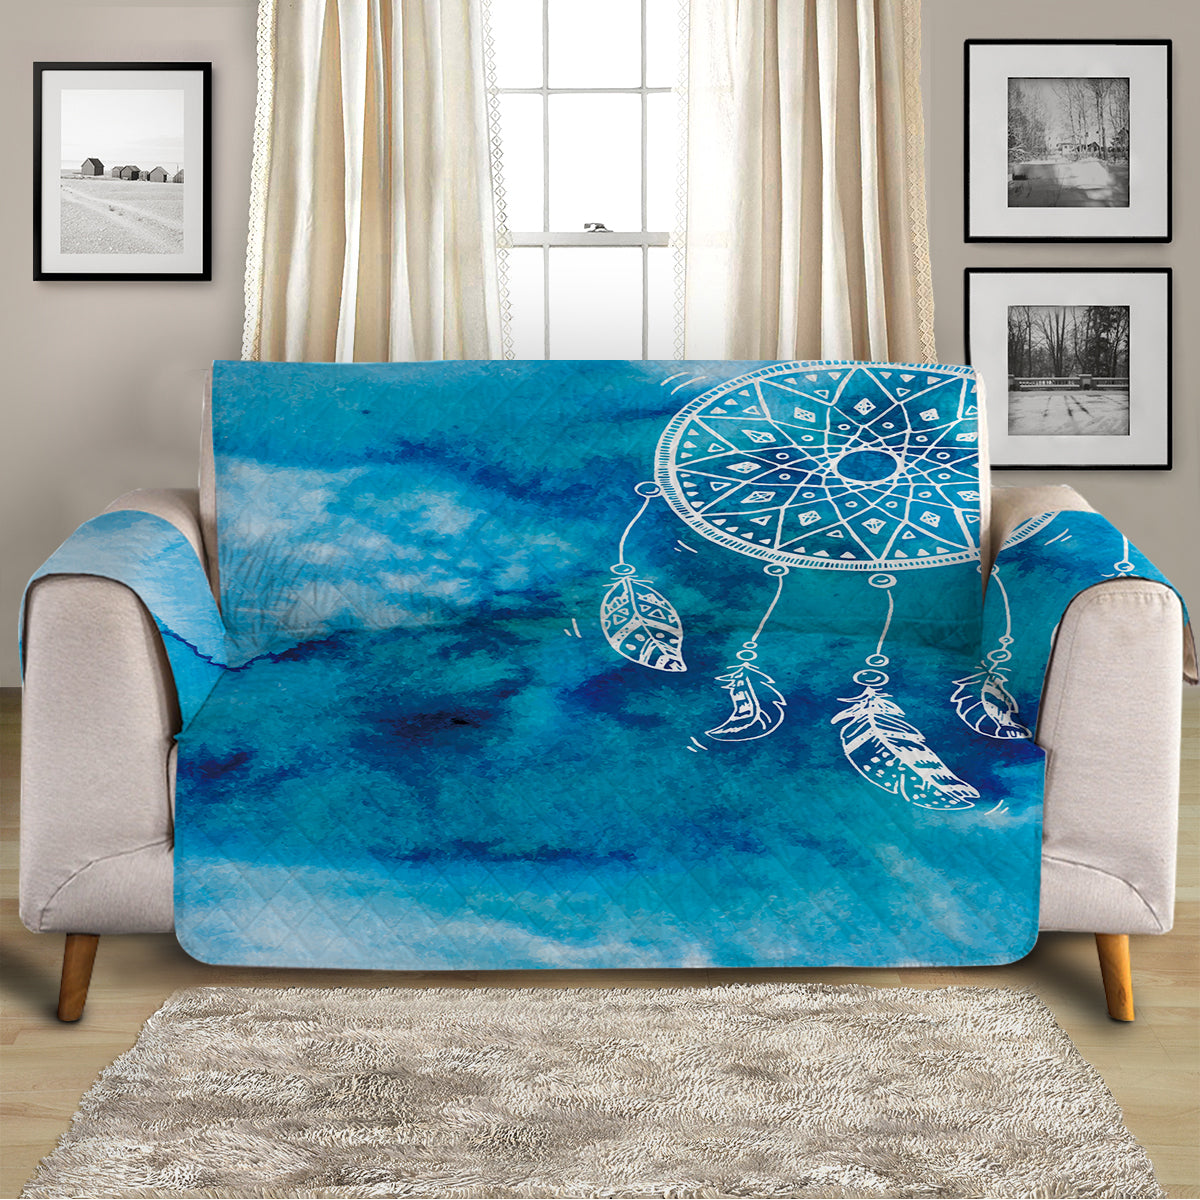 Ocean Dreaming Sofa Cover